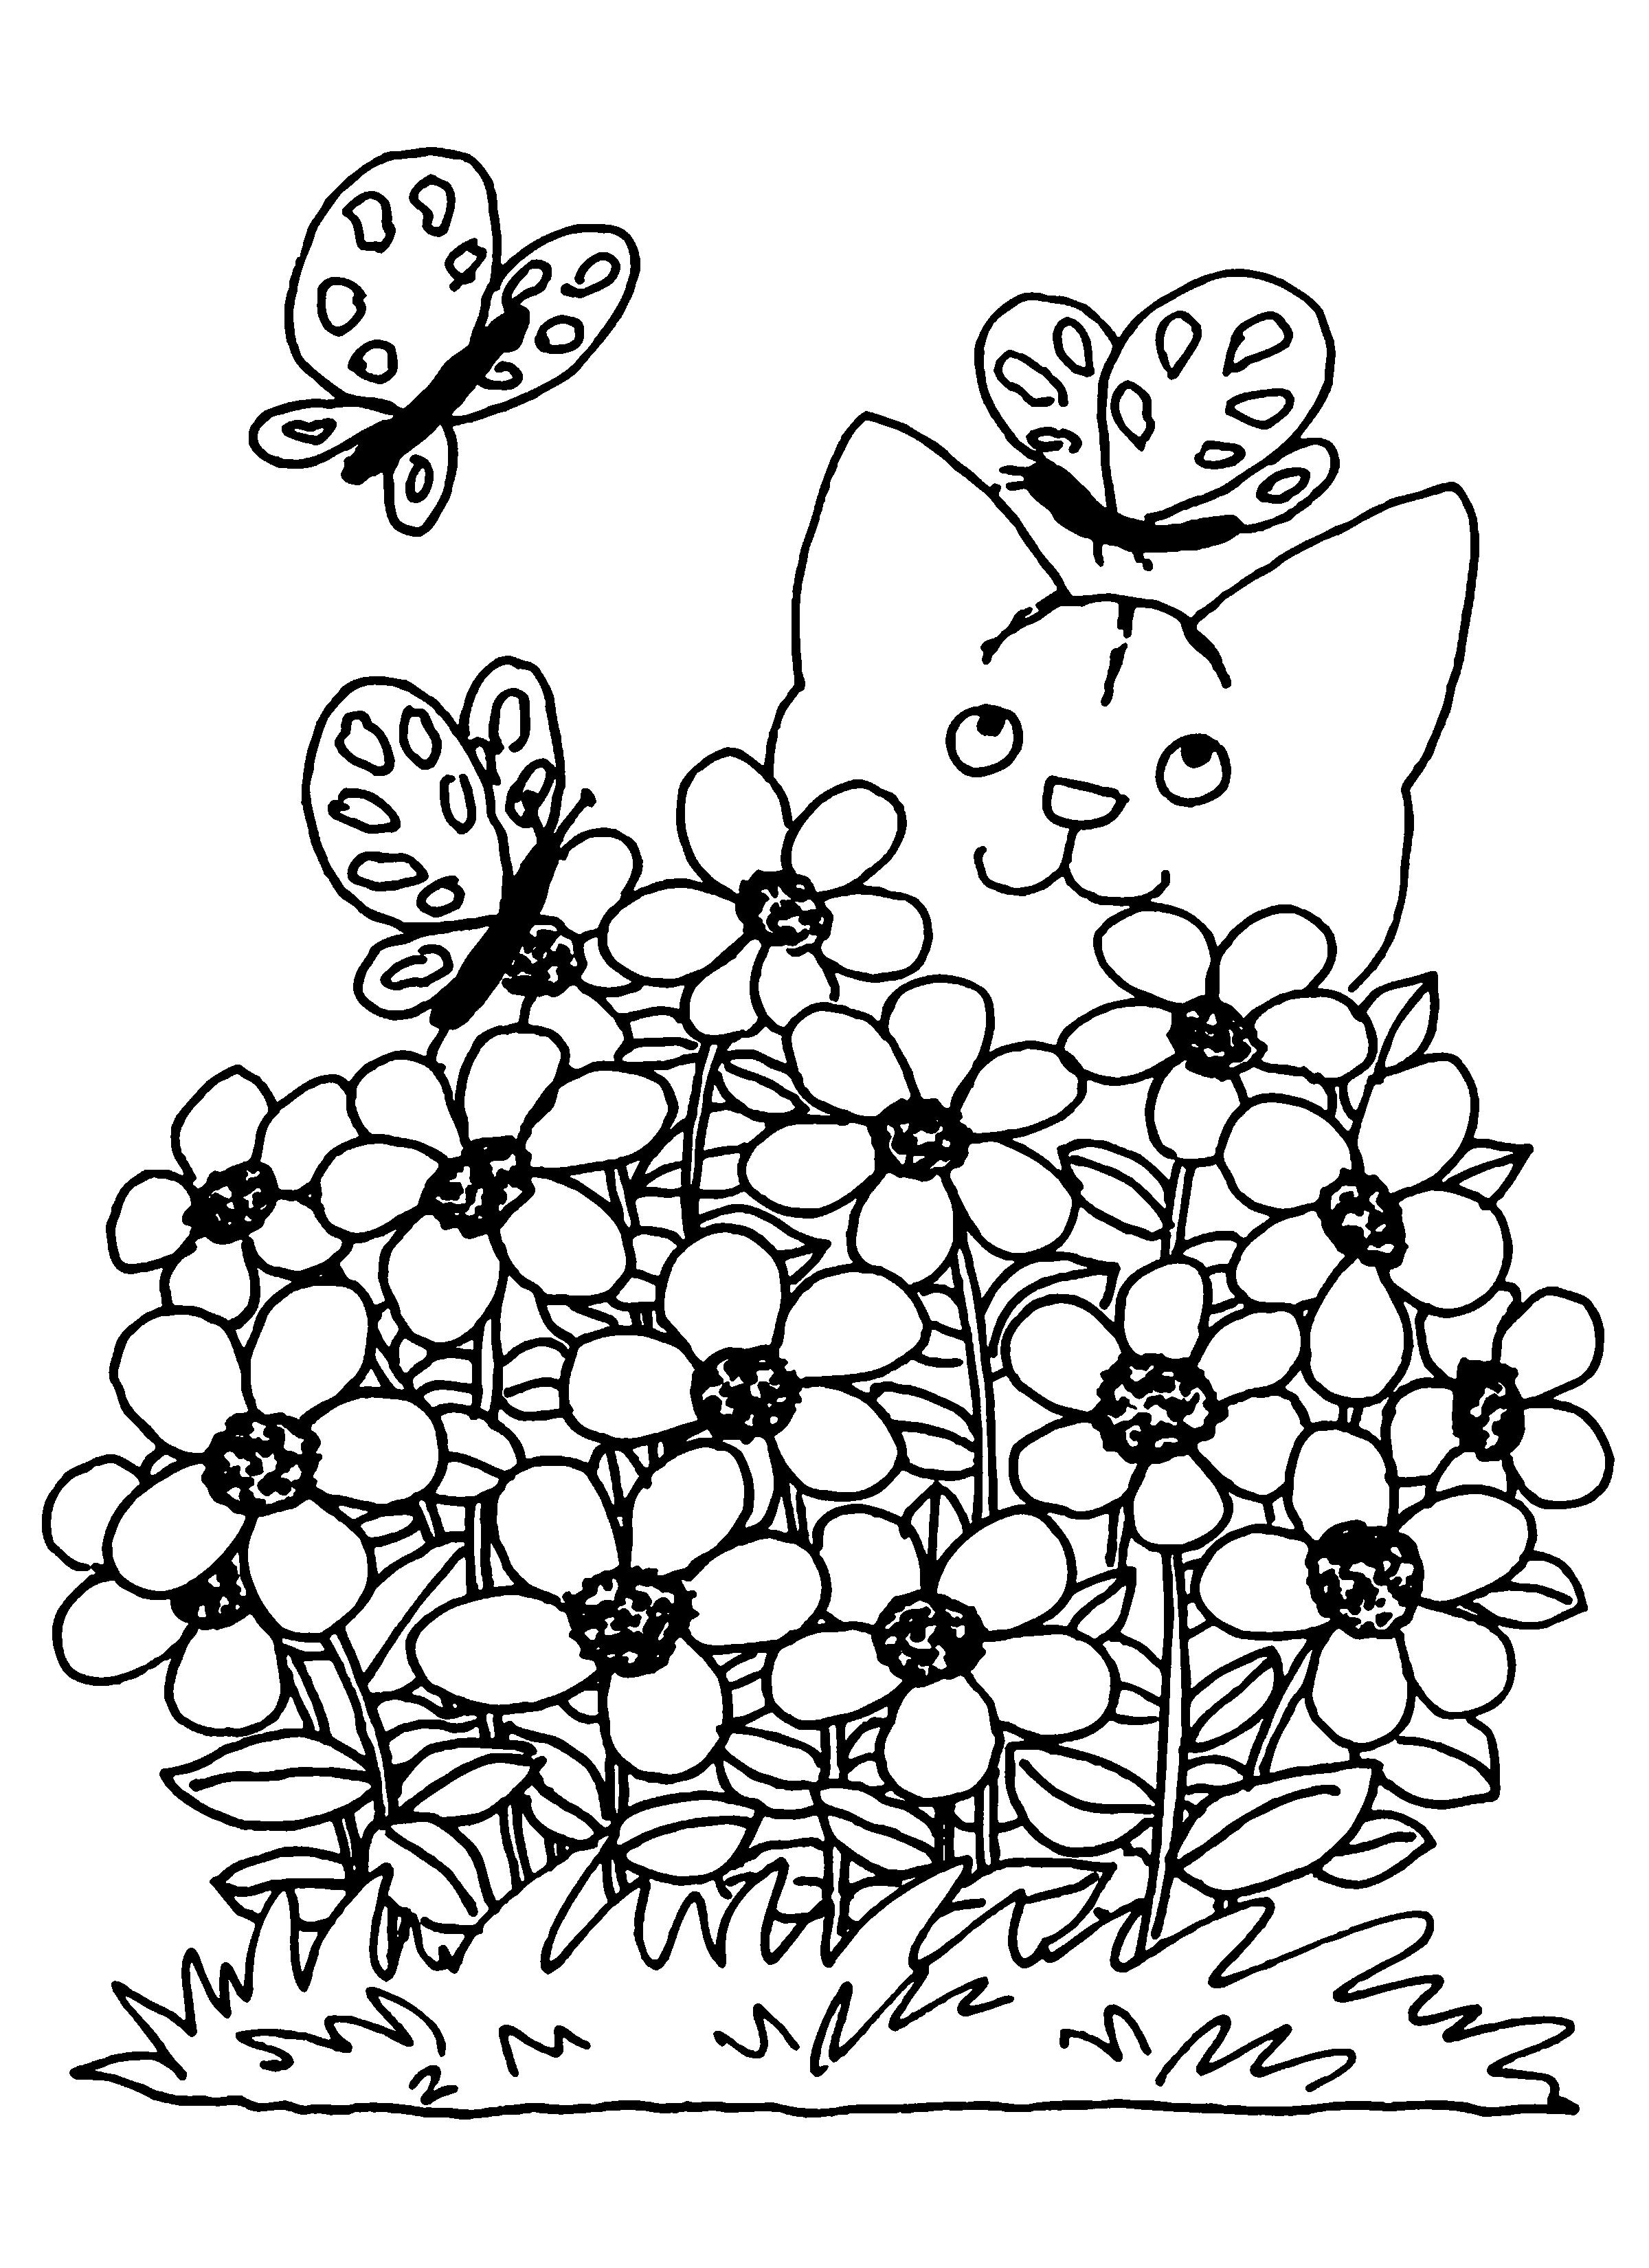 Coloriage Printemps Ce2.Coloriage Printemps 128 Lescoloriages Net